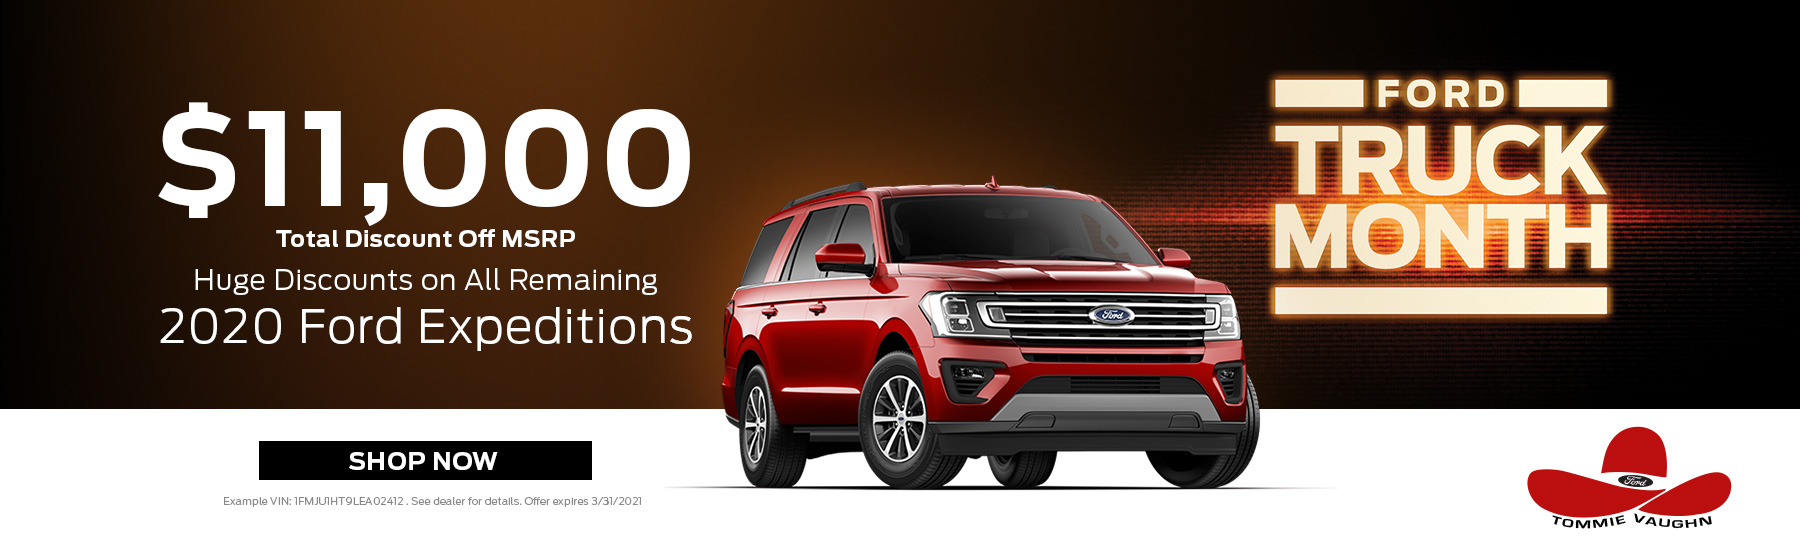 2020 Expedition Offer - Truck Month